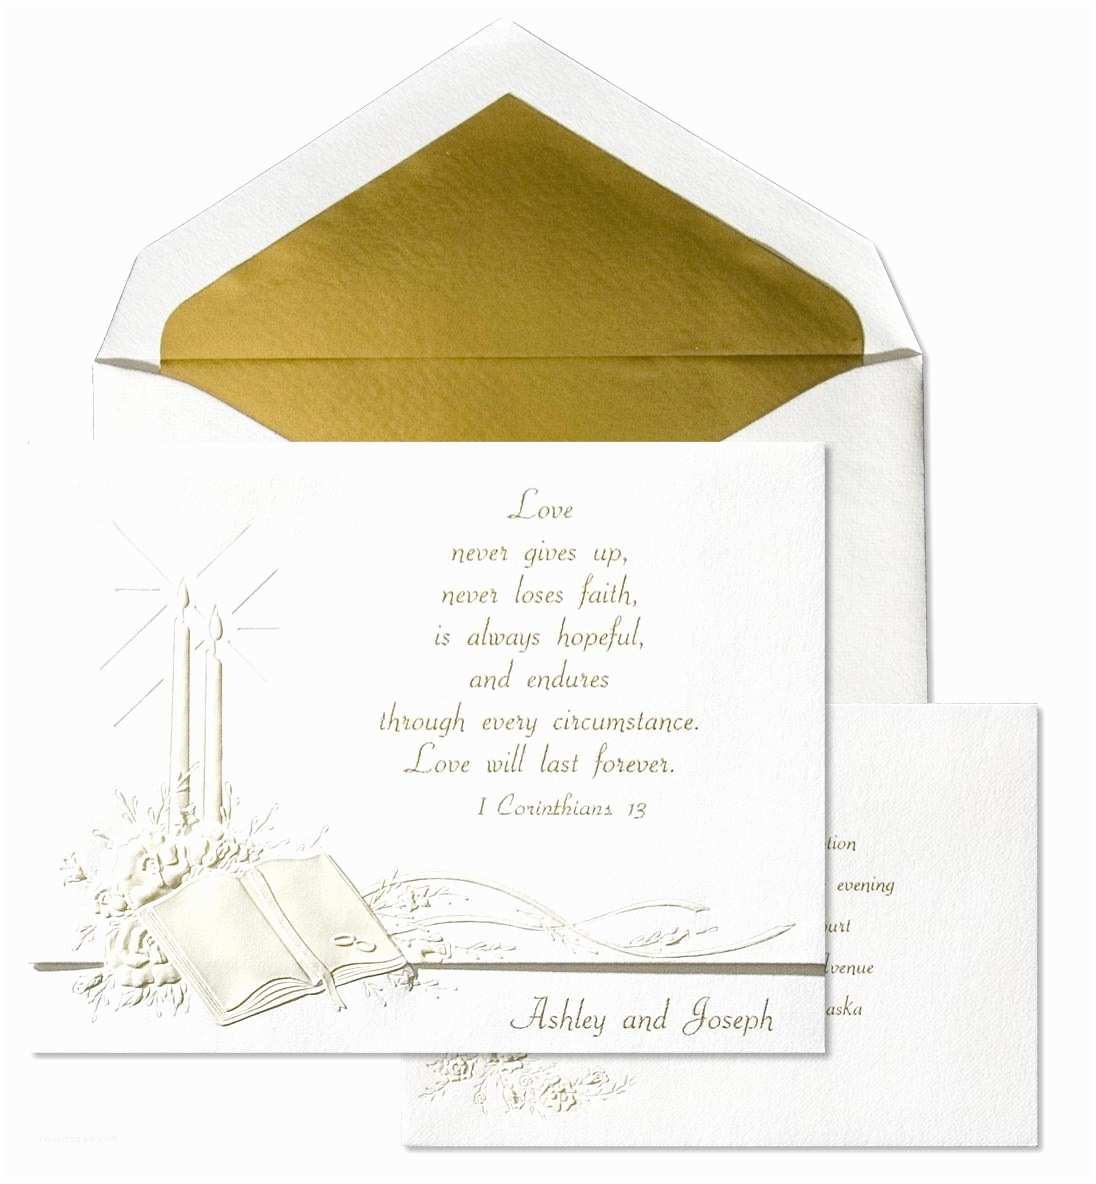 Samples Of Wedding Invitations Sublime Grey Card Background the Wedding Invitation